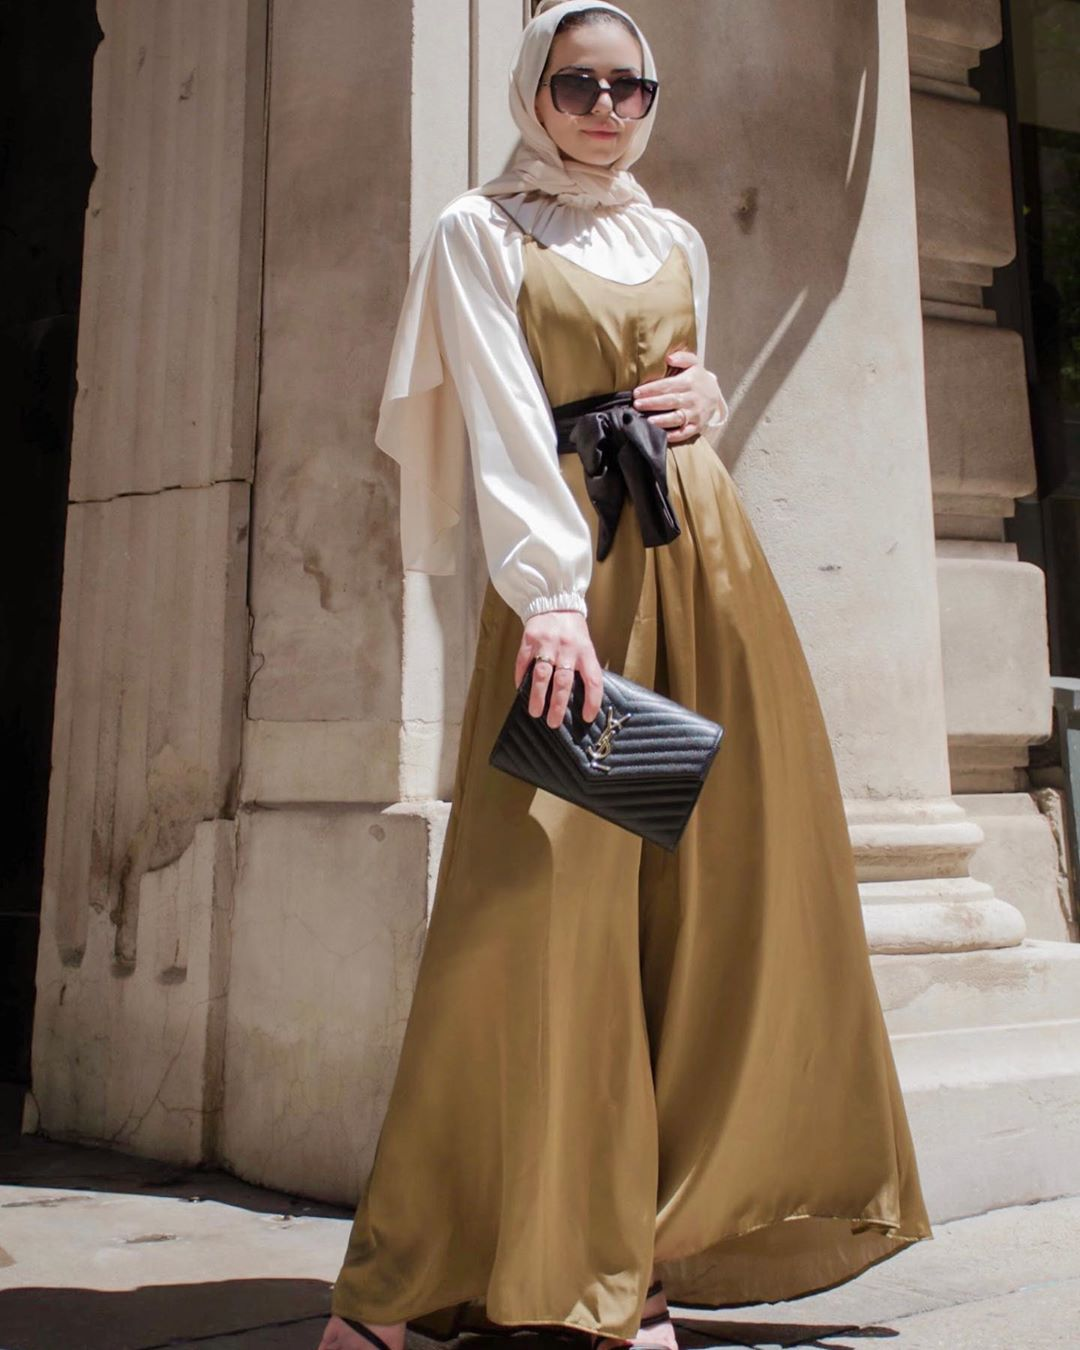 Elegant Fall Wedding Guest Outfit Ideas By Duha (@styledbyduha)